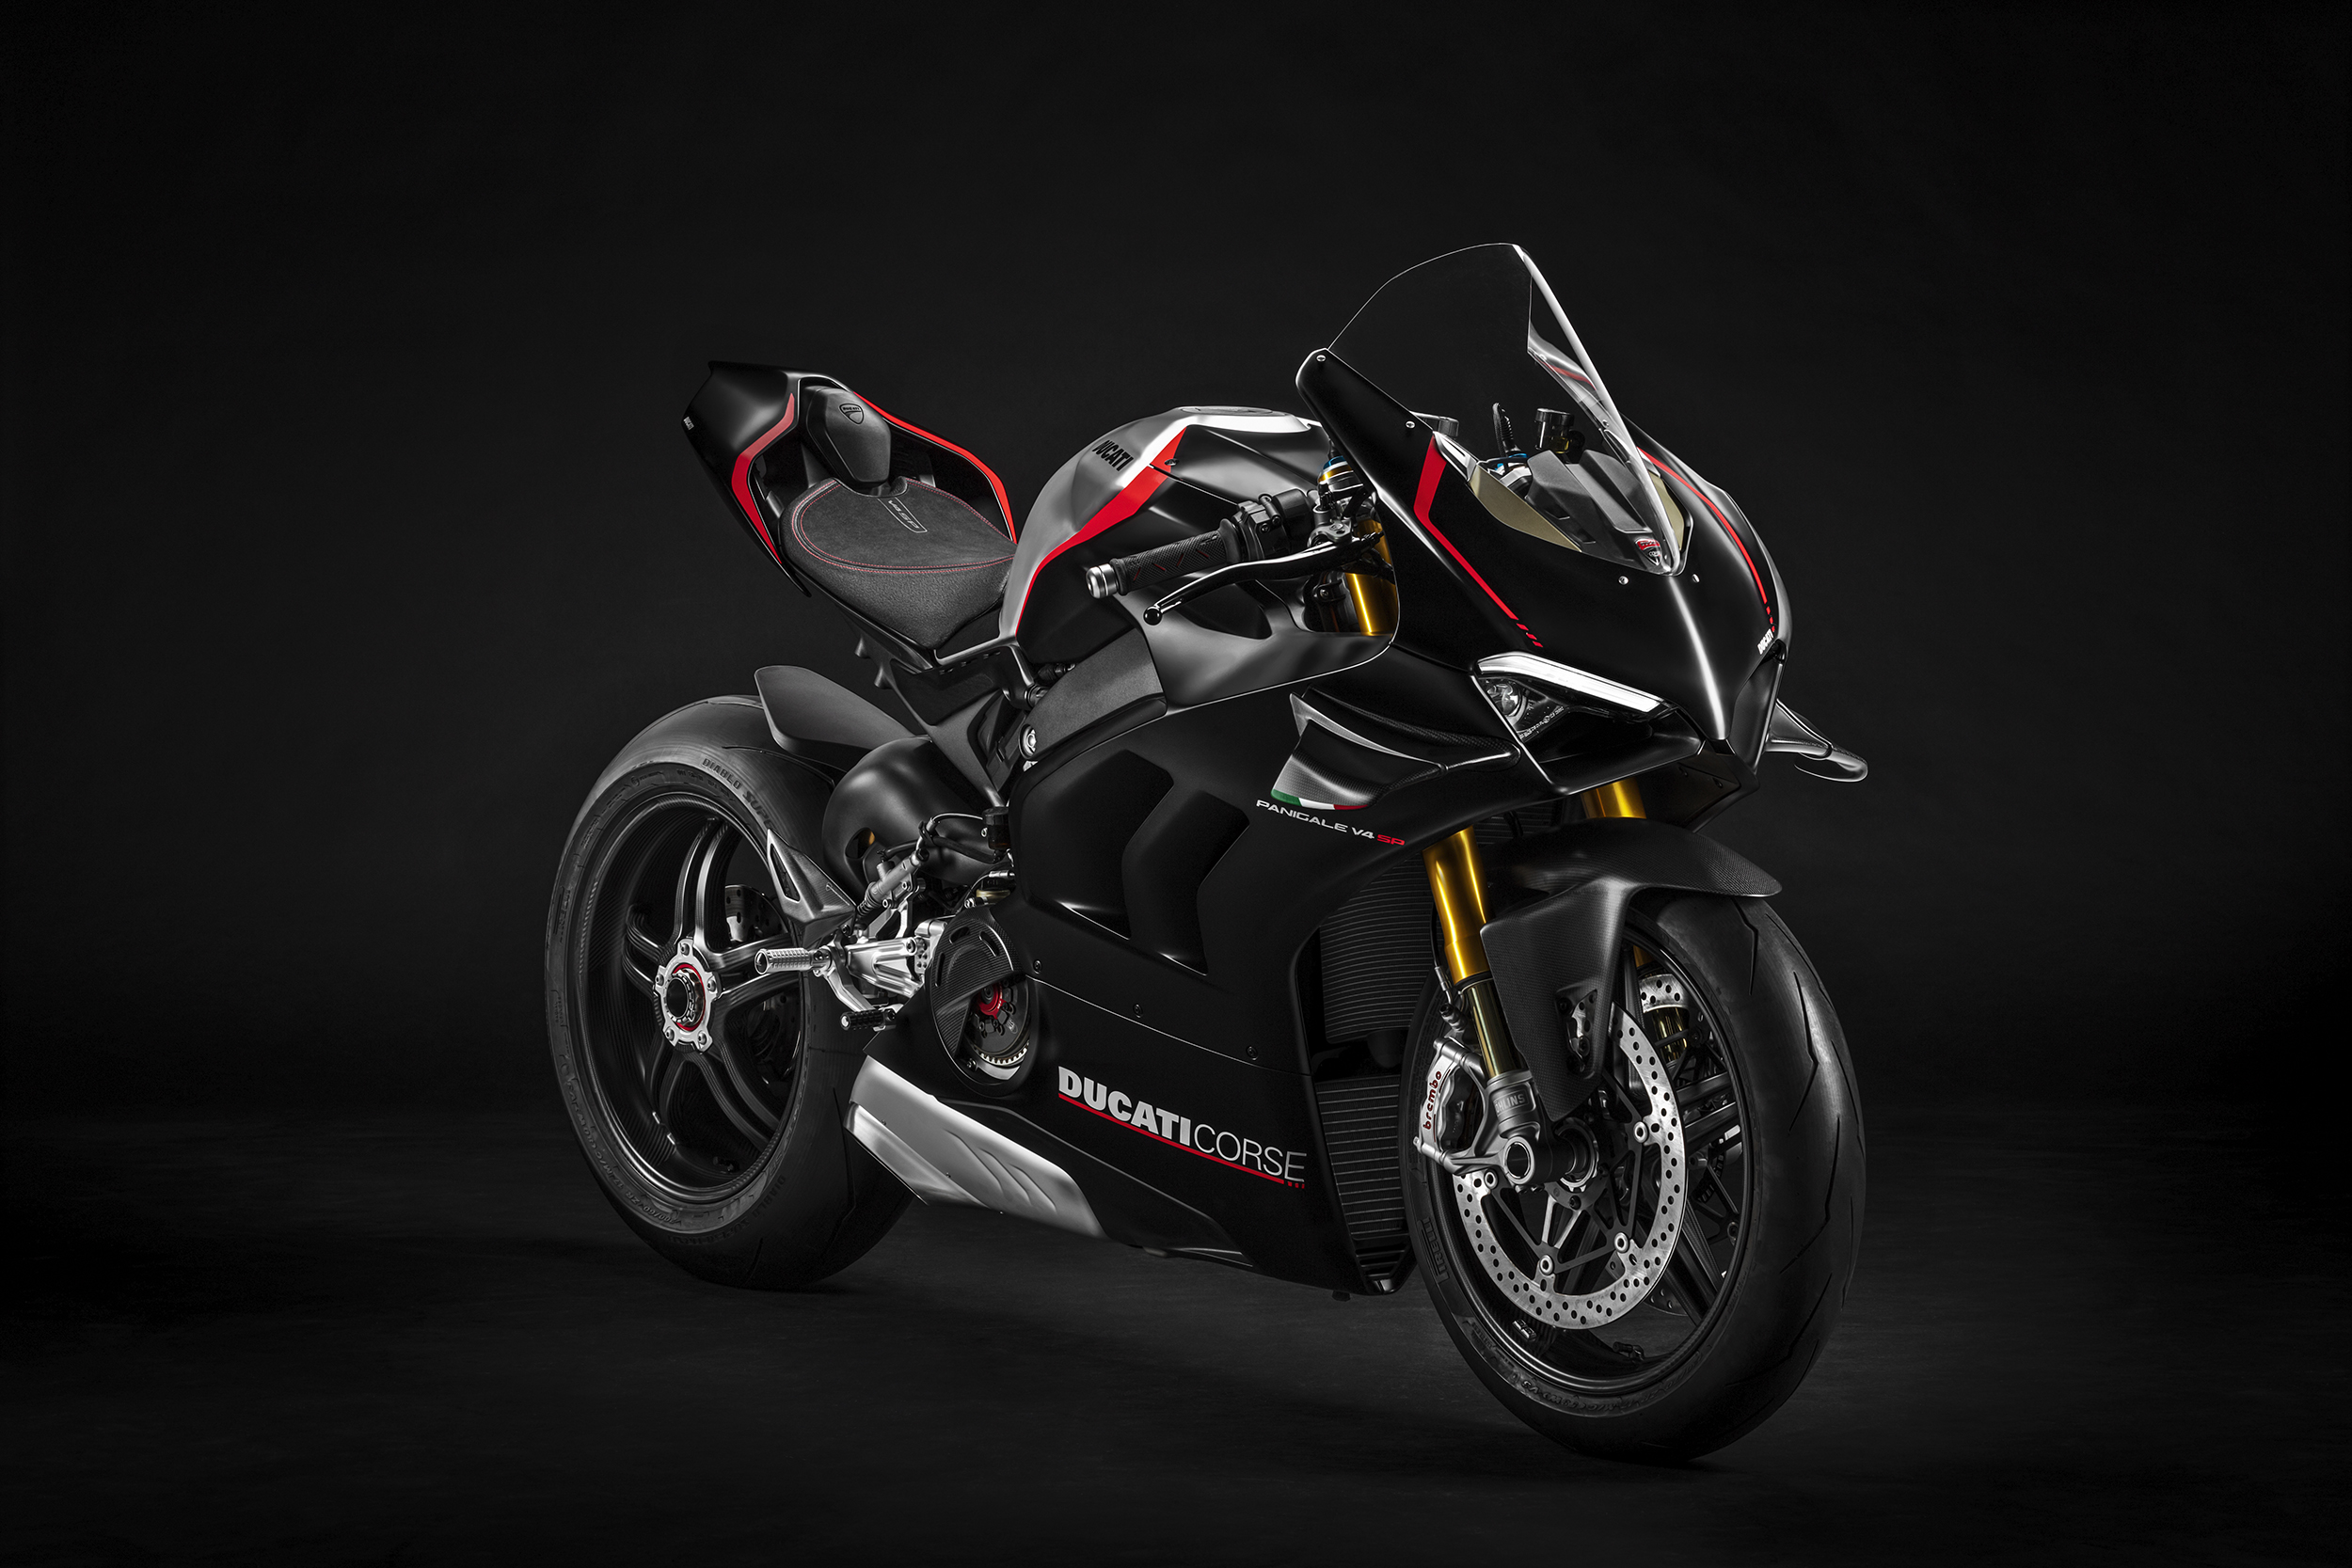 2021 DUCATI_PANIGALE_V4_SP _5__UC211439_High